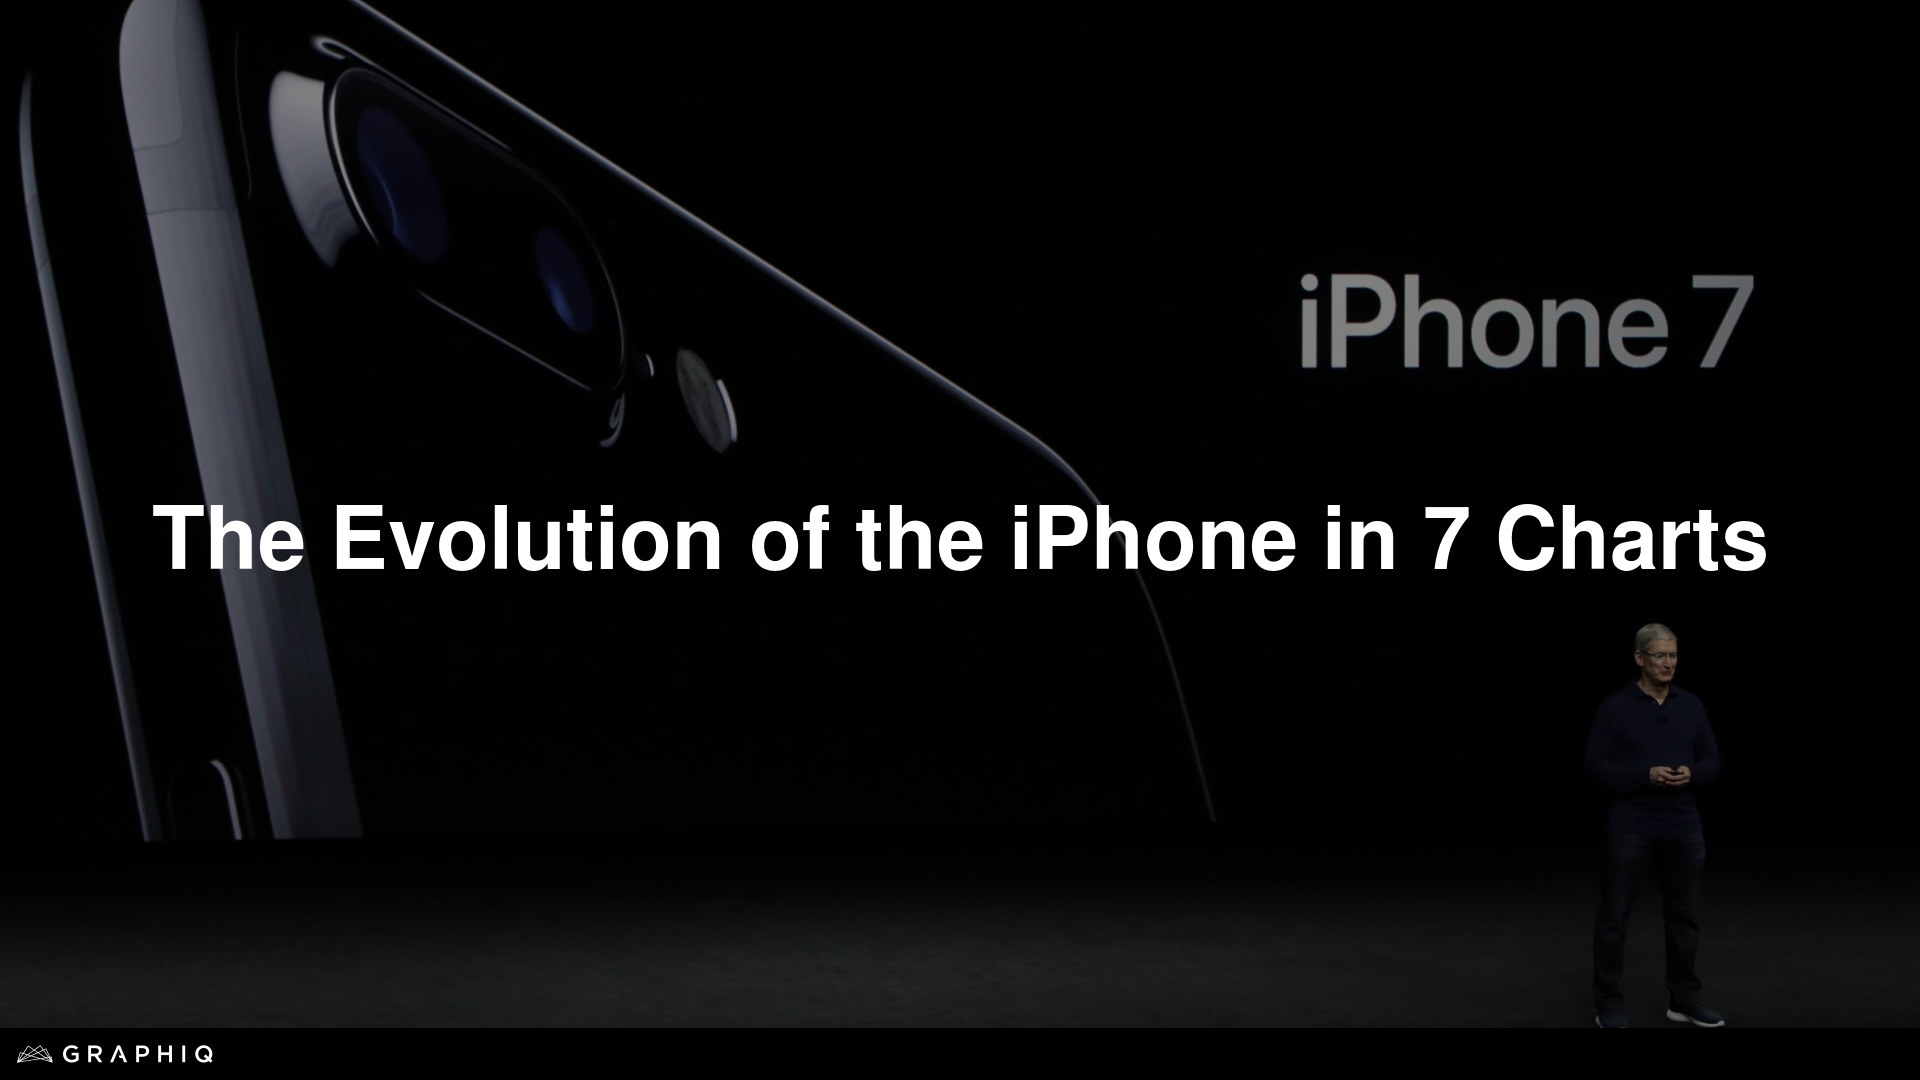 The Evolution of the iPhone in 7 Charts